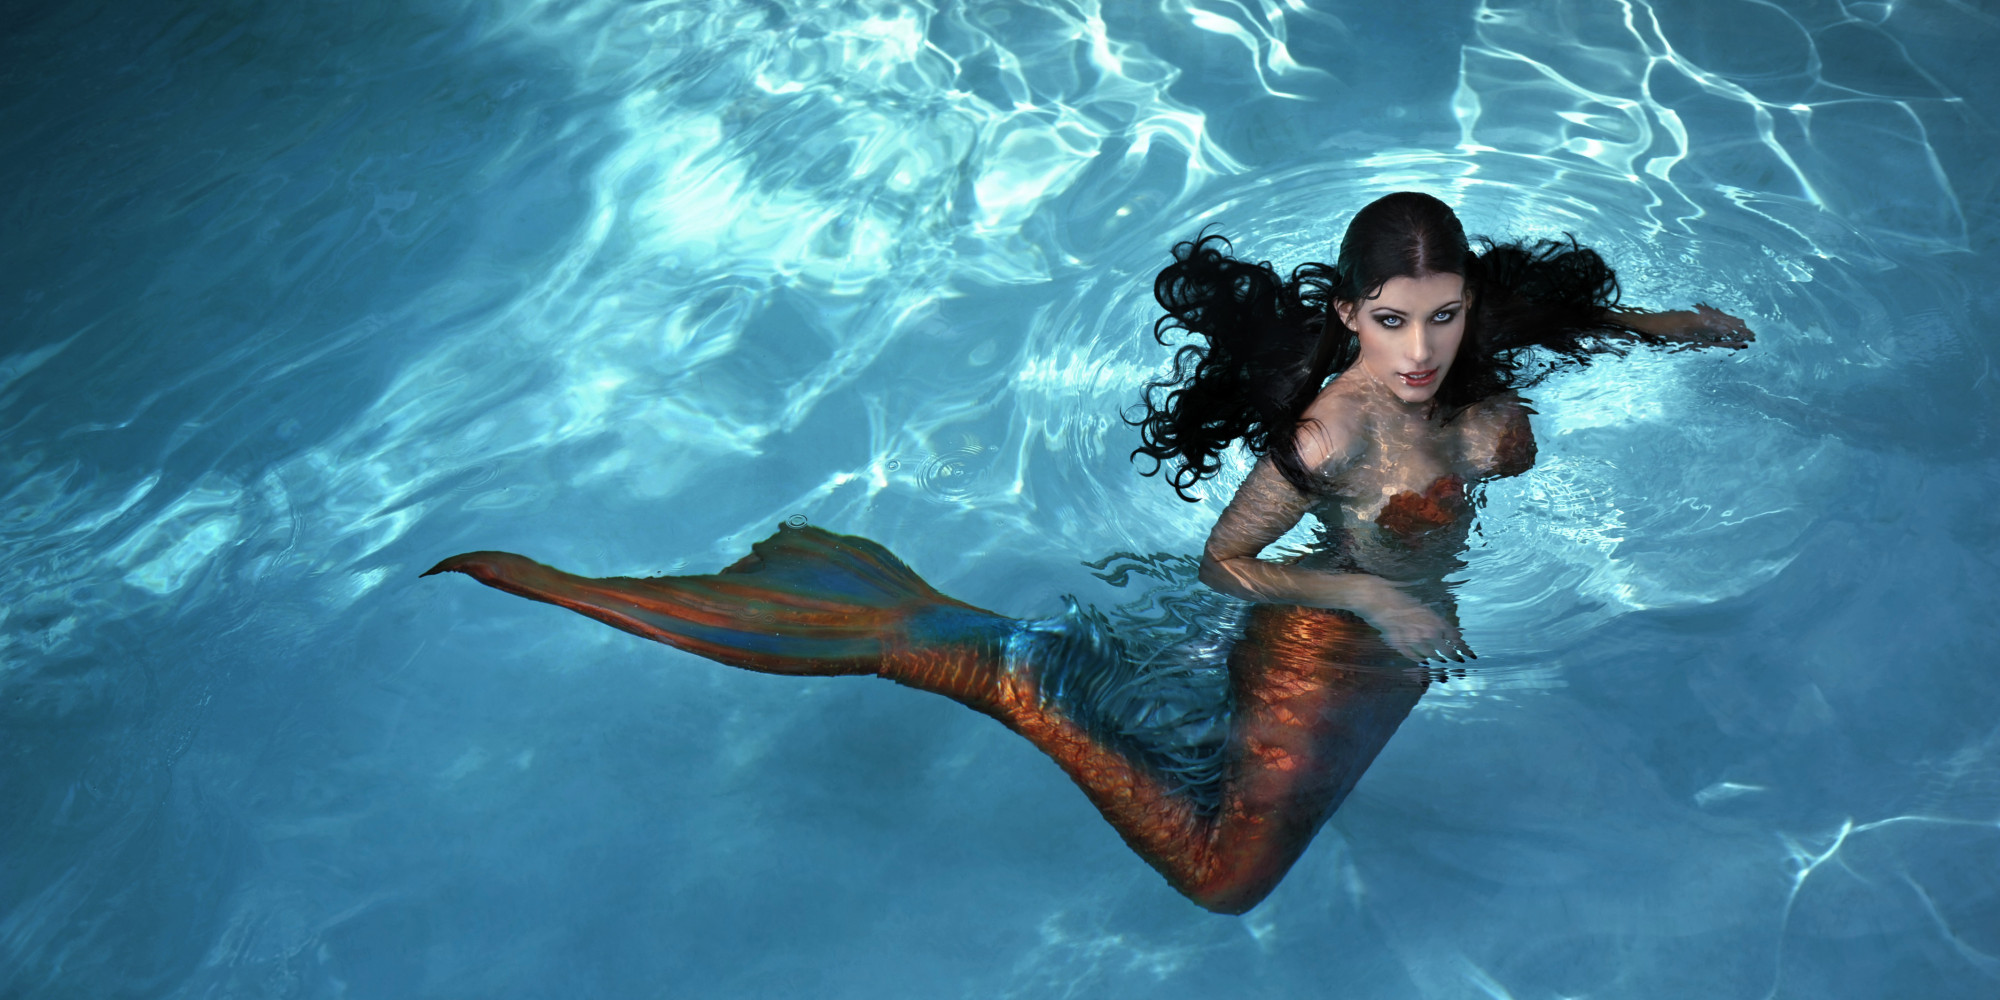 Mermaids Real Pics Real Live Mermaids